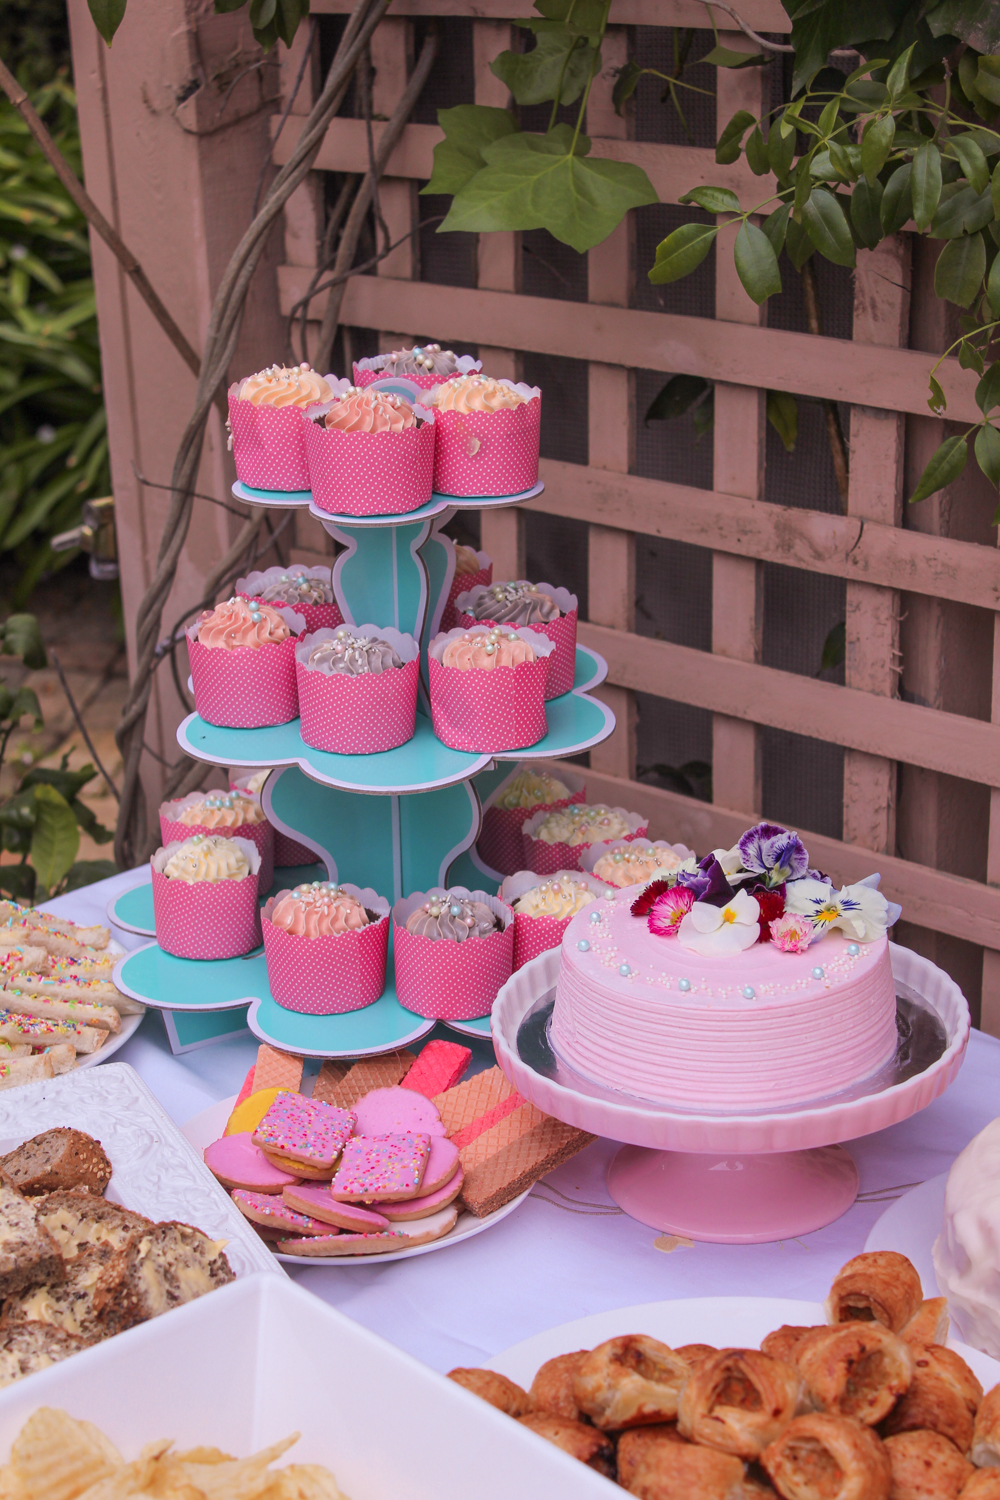 Spring these cupcakes and birthday cake by Pretty special Cakes